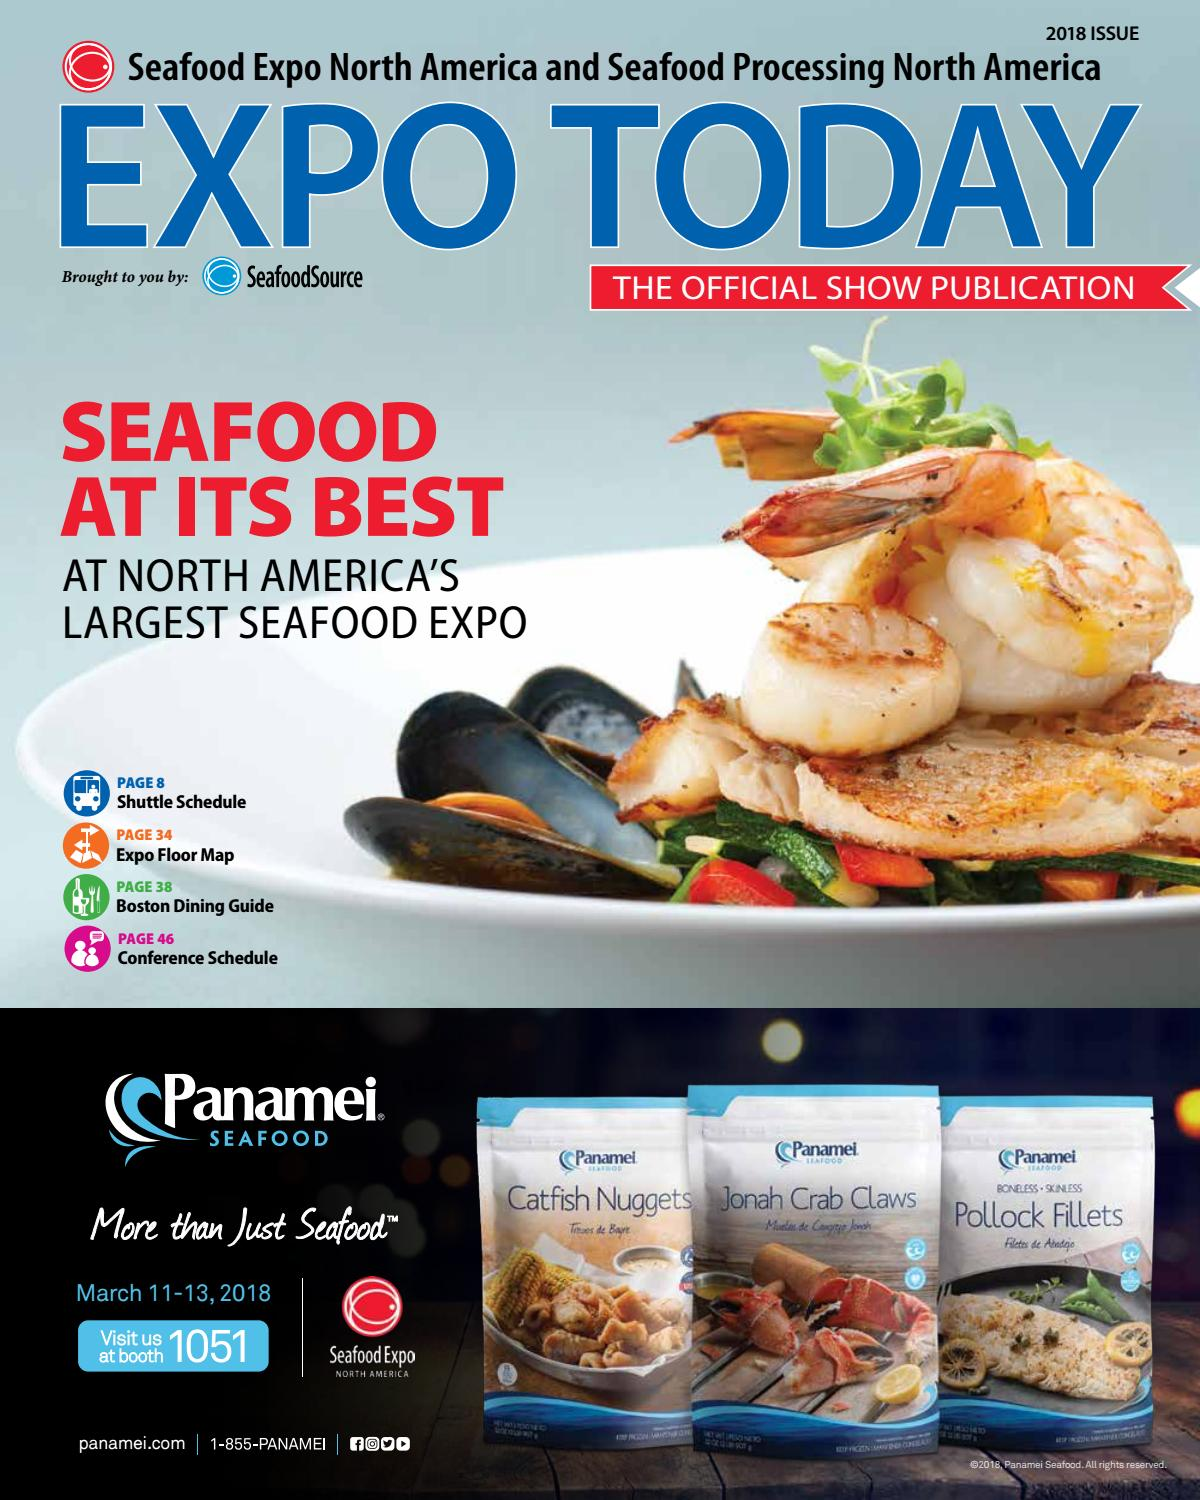 Expo Cuisine Seafood Expo North America And Seafood Processing North America